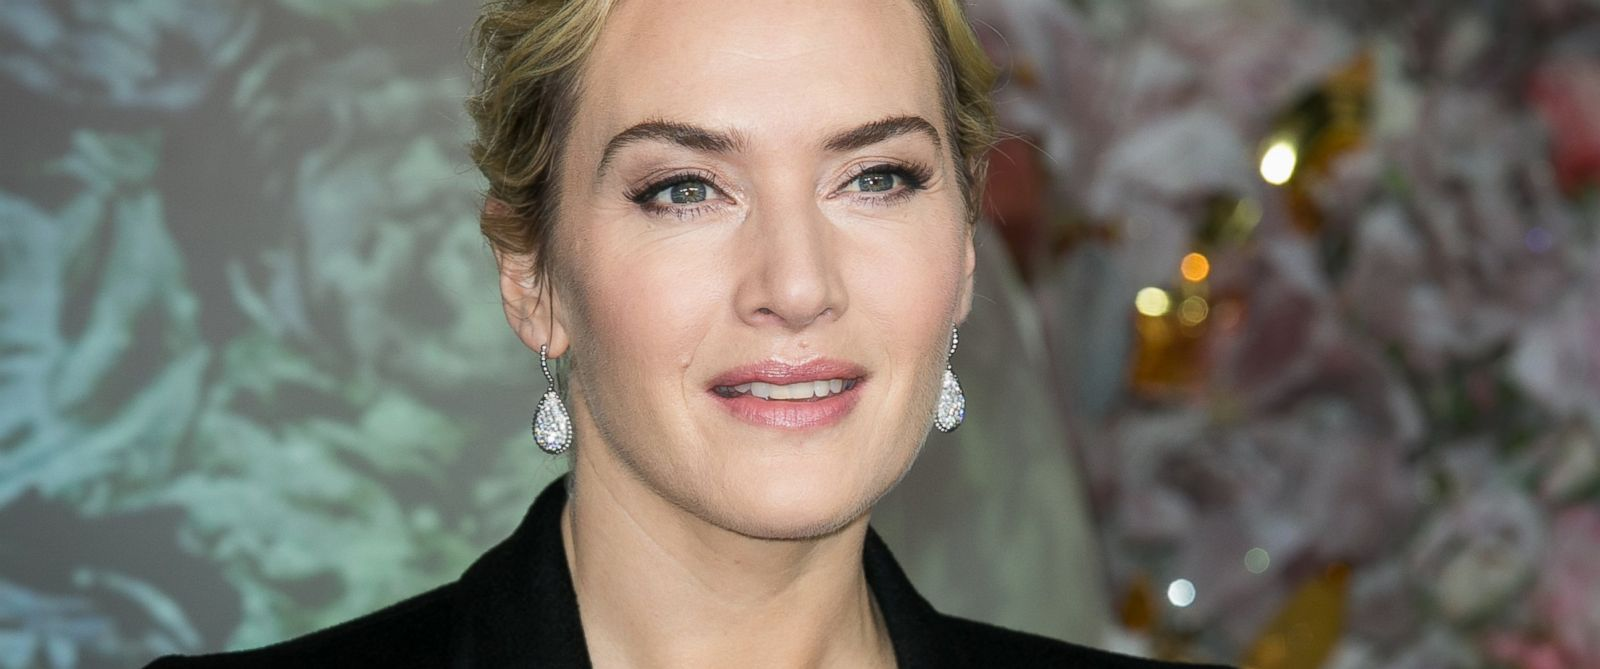 kate winslet says discussion about gender pay gap is a bit vulgar kate winslet says discussion about gender pay gap is a bit vulgar